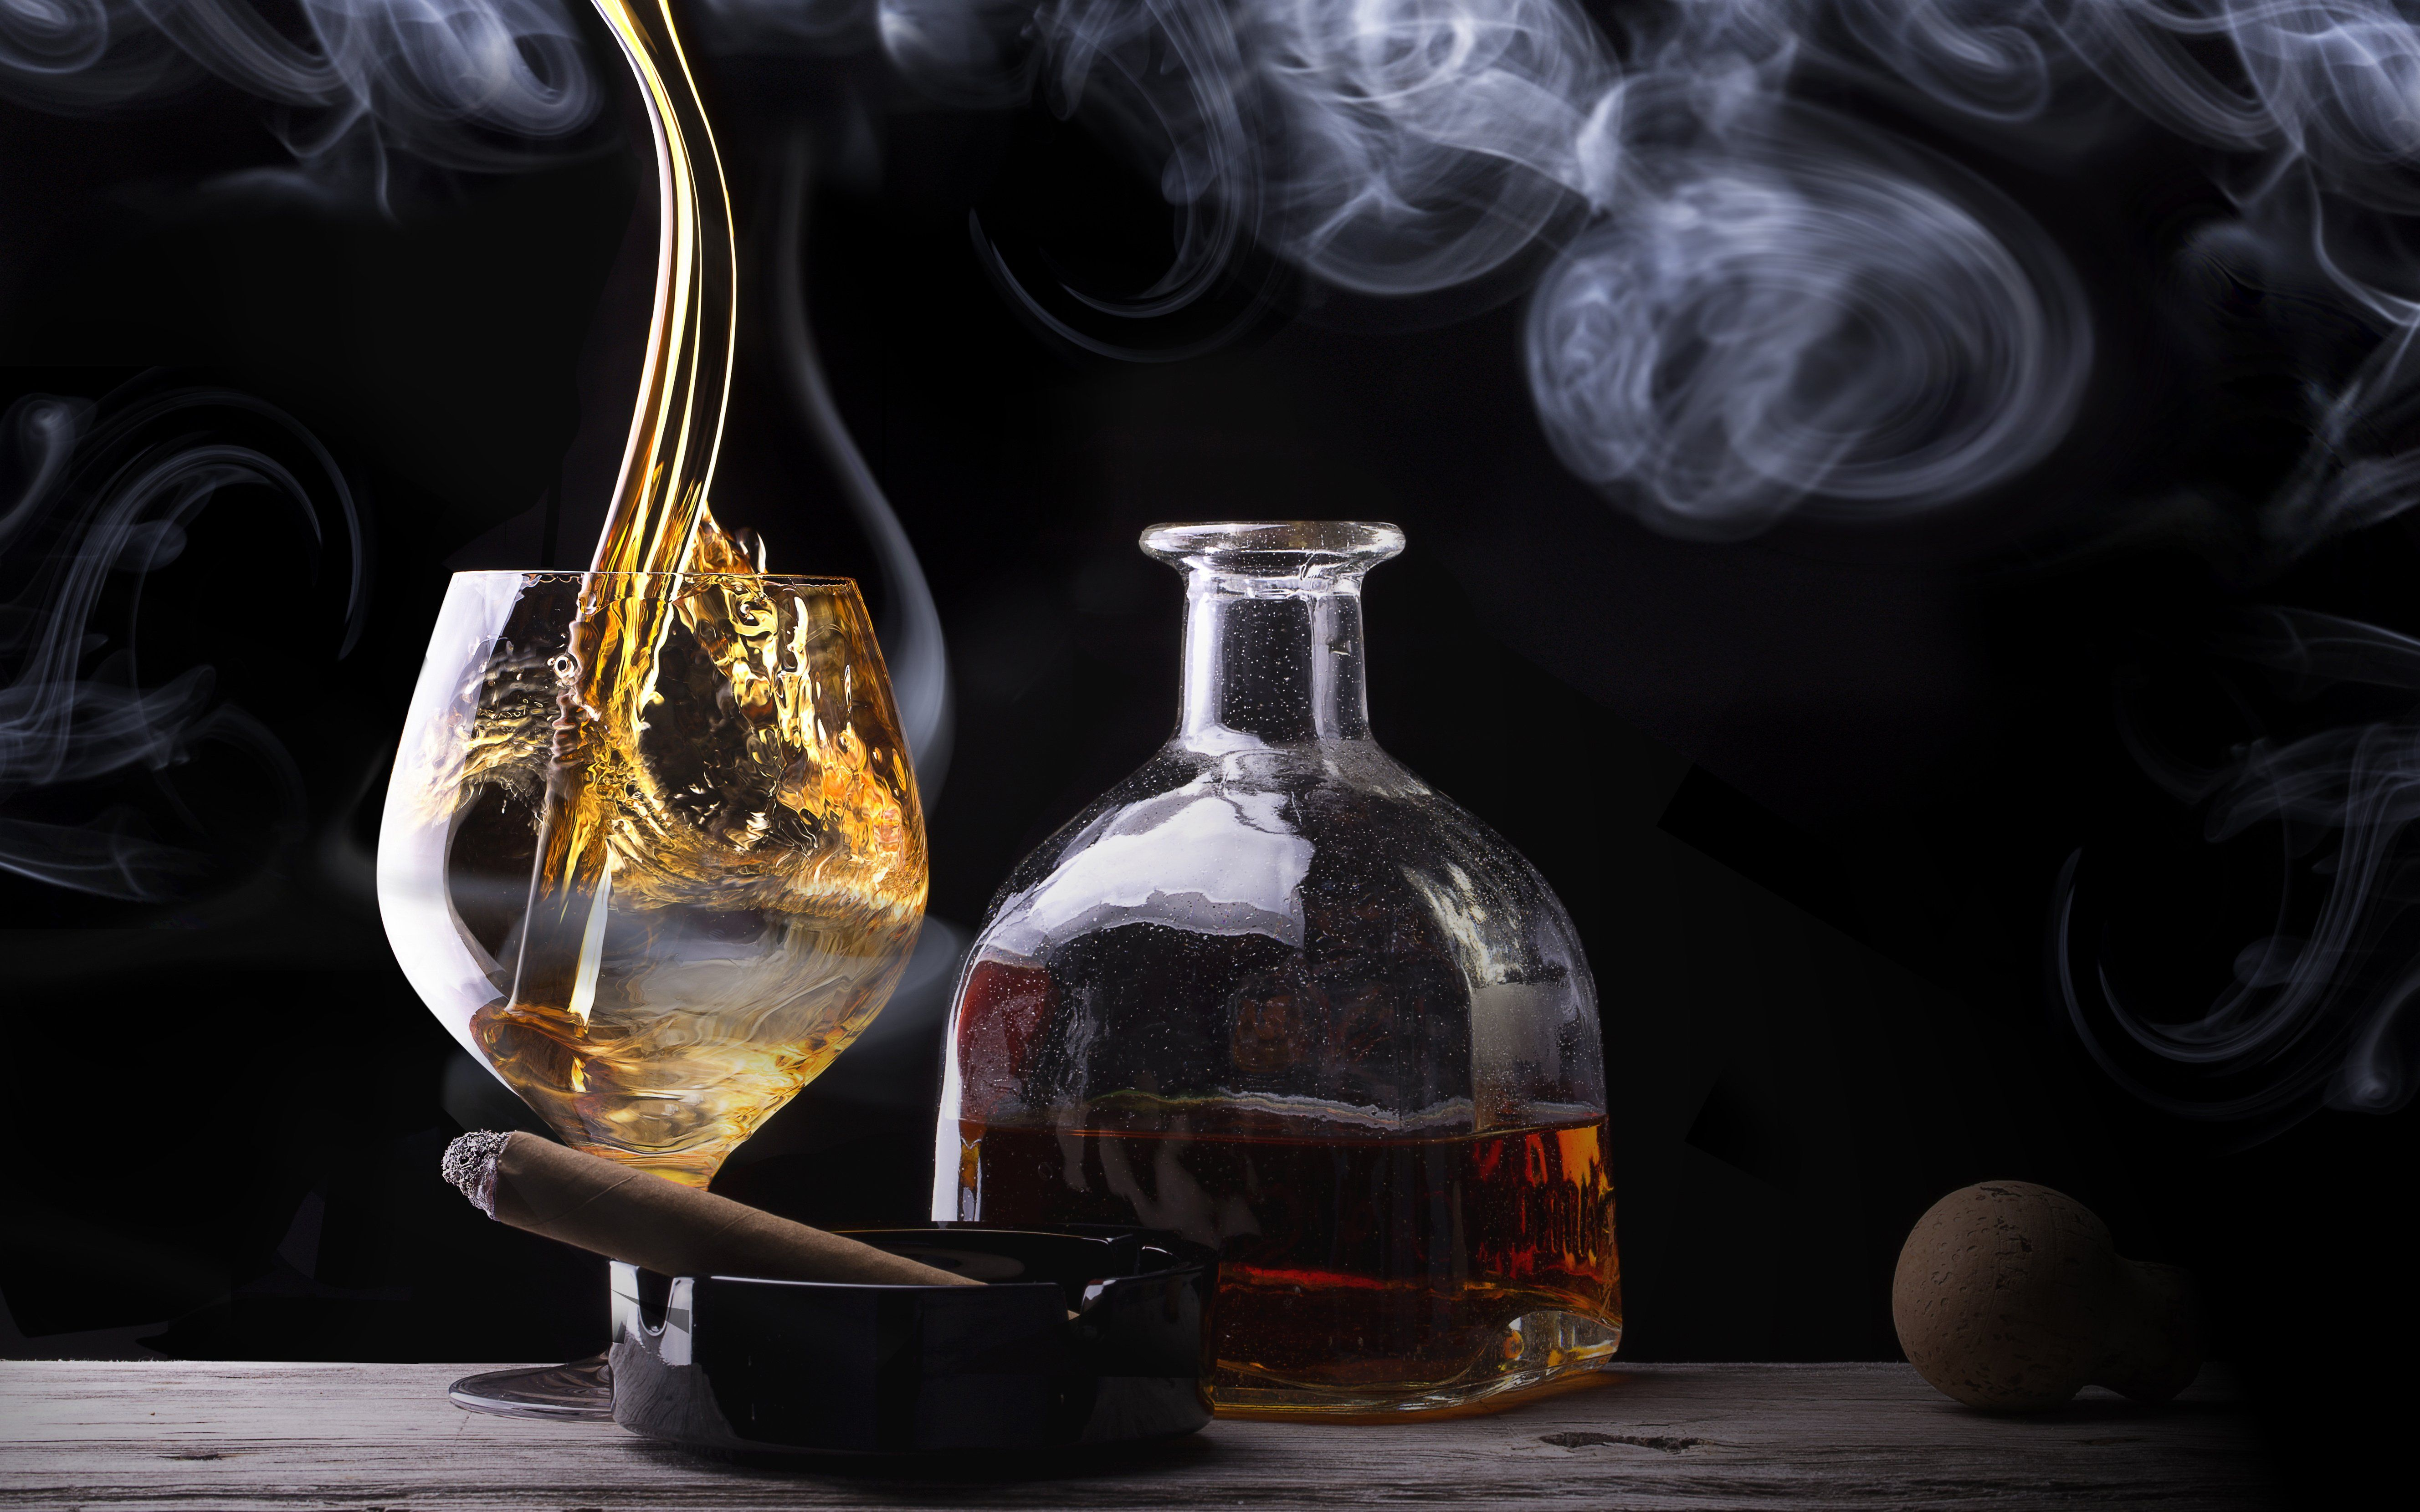 cigar whiskey glass bottle smoke alcohol f wallpaper | 5312x3320